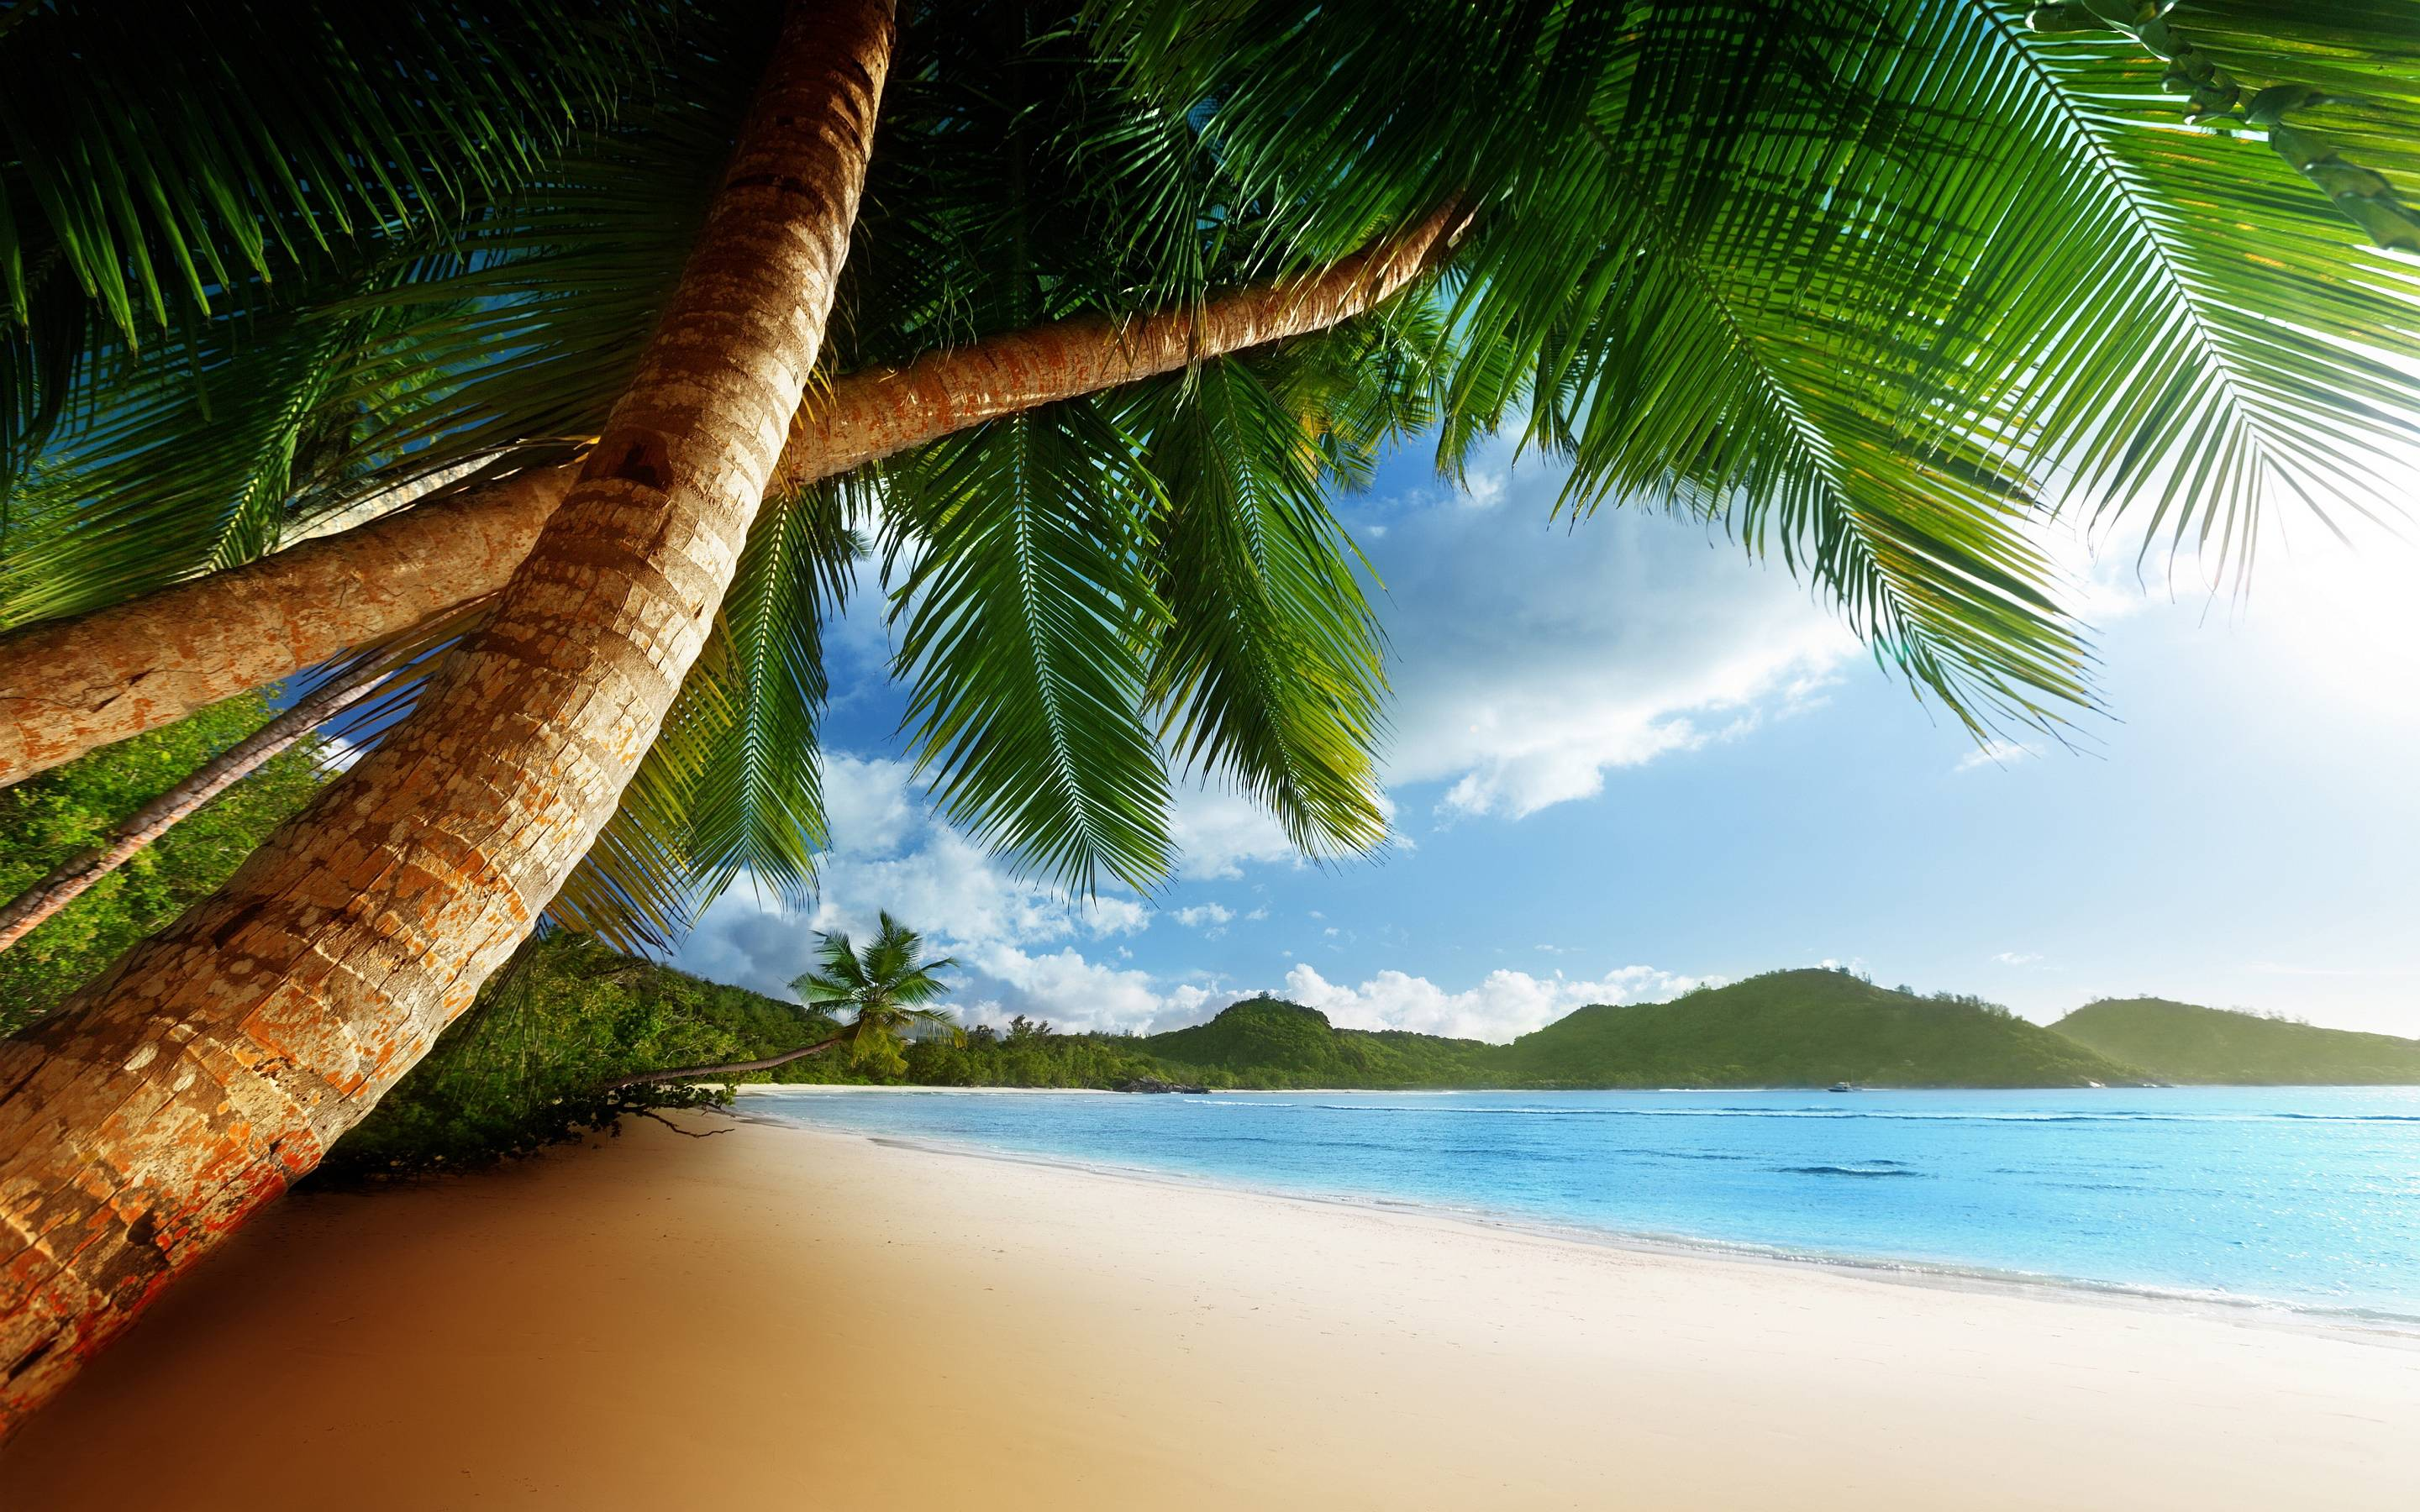 10 Best Tropical Beach Desktop Backgrounds Full Hd 1920: Free Caribbean Beach Wallpapers